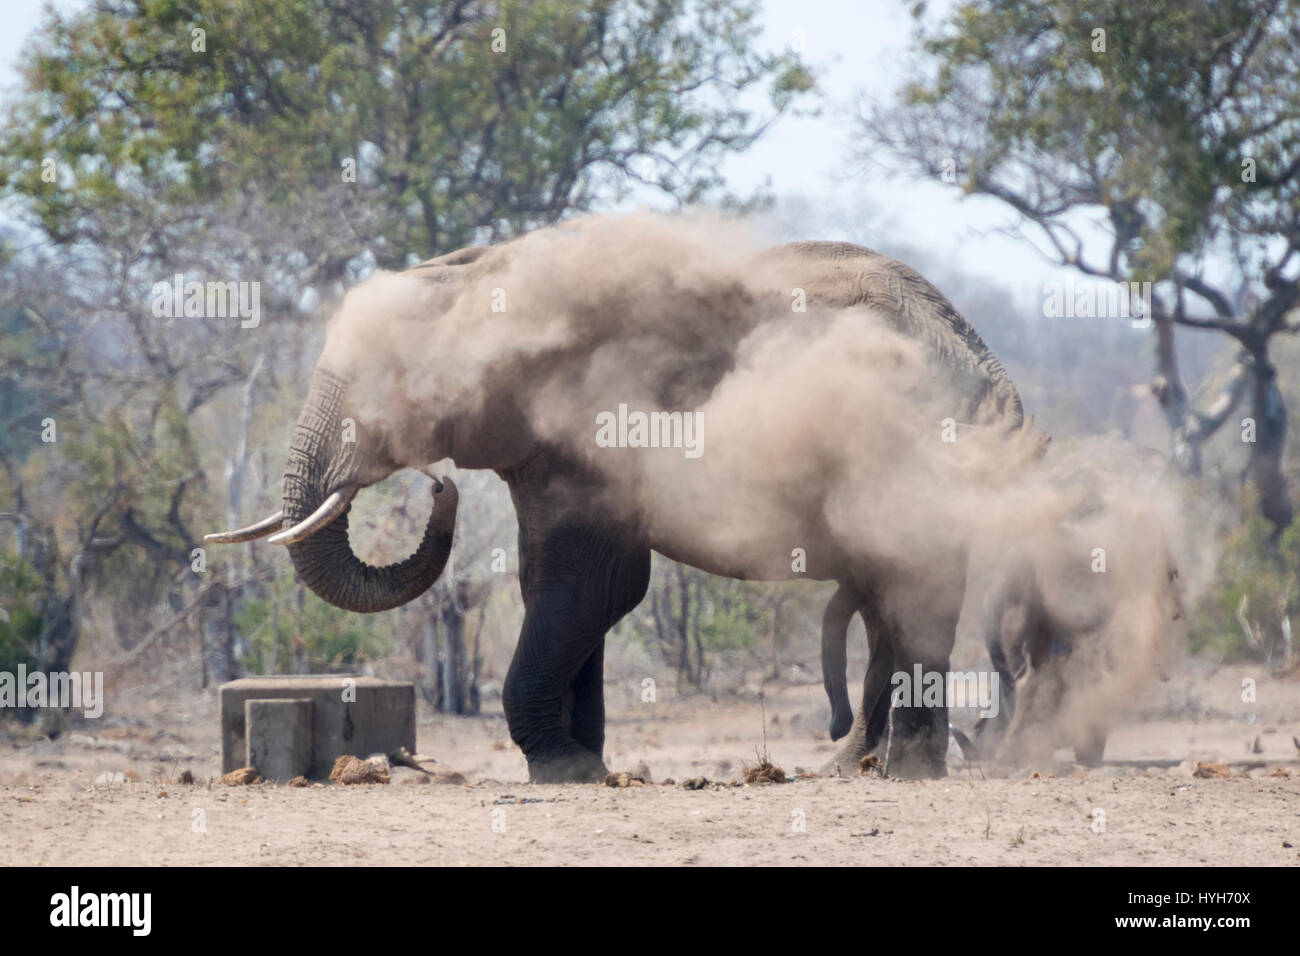 African Elephant (Loxodonta africana) bull, taking dust bath, Kruger national park, South Africa. - Stock Image